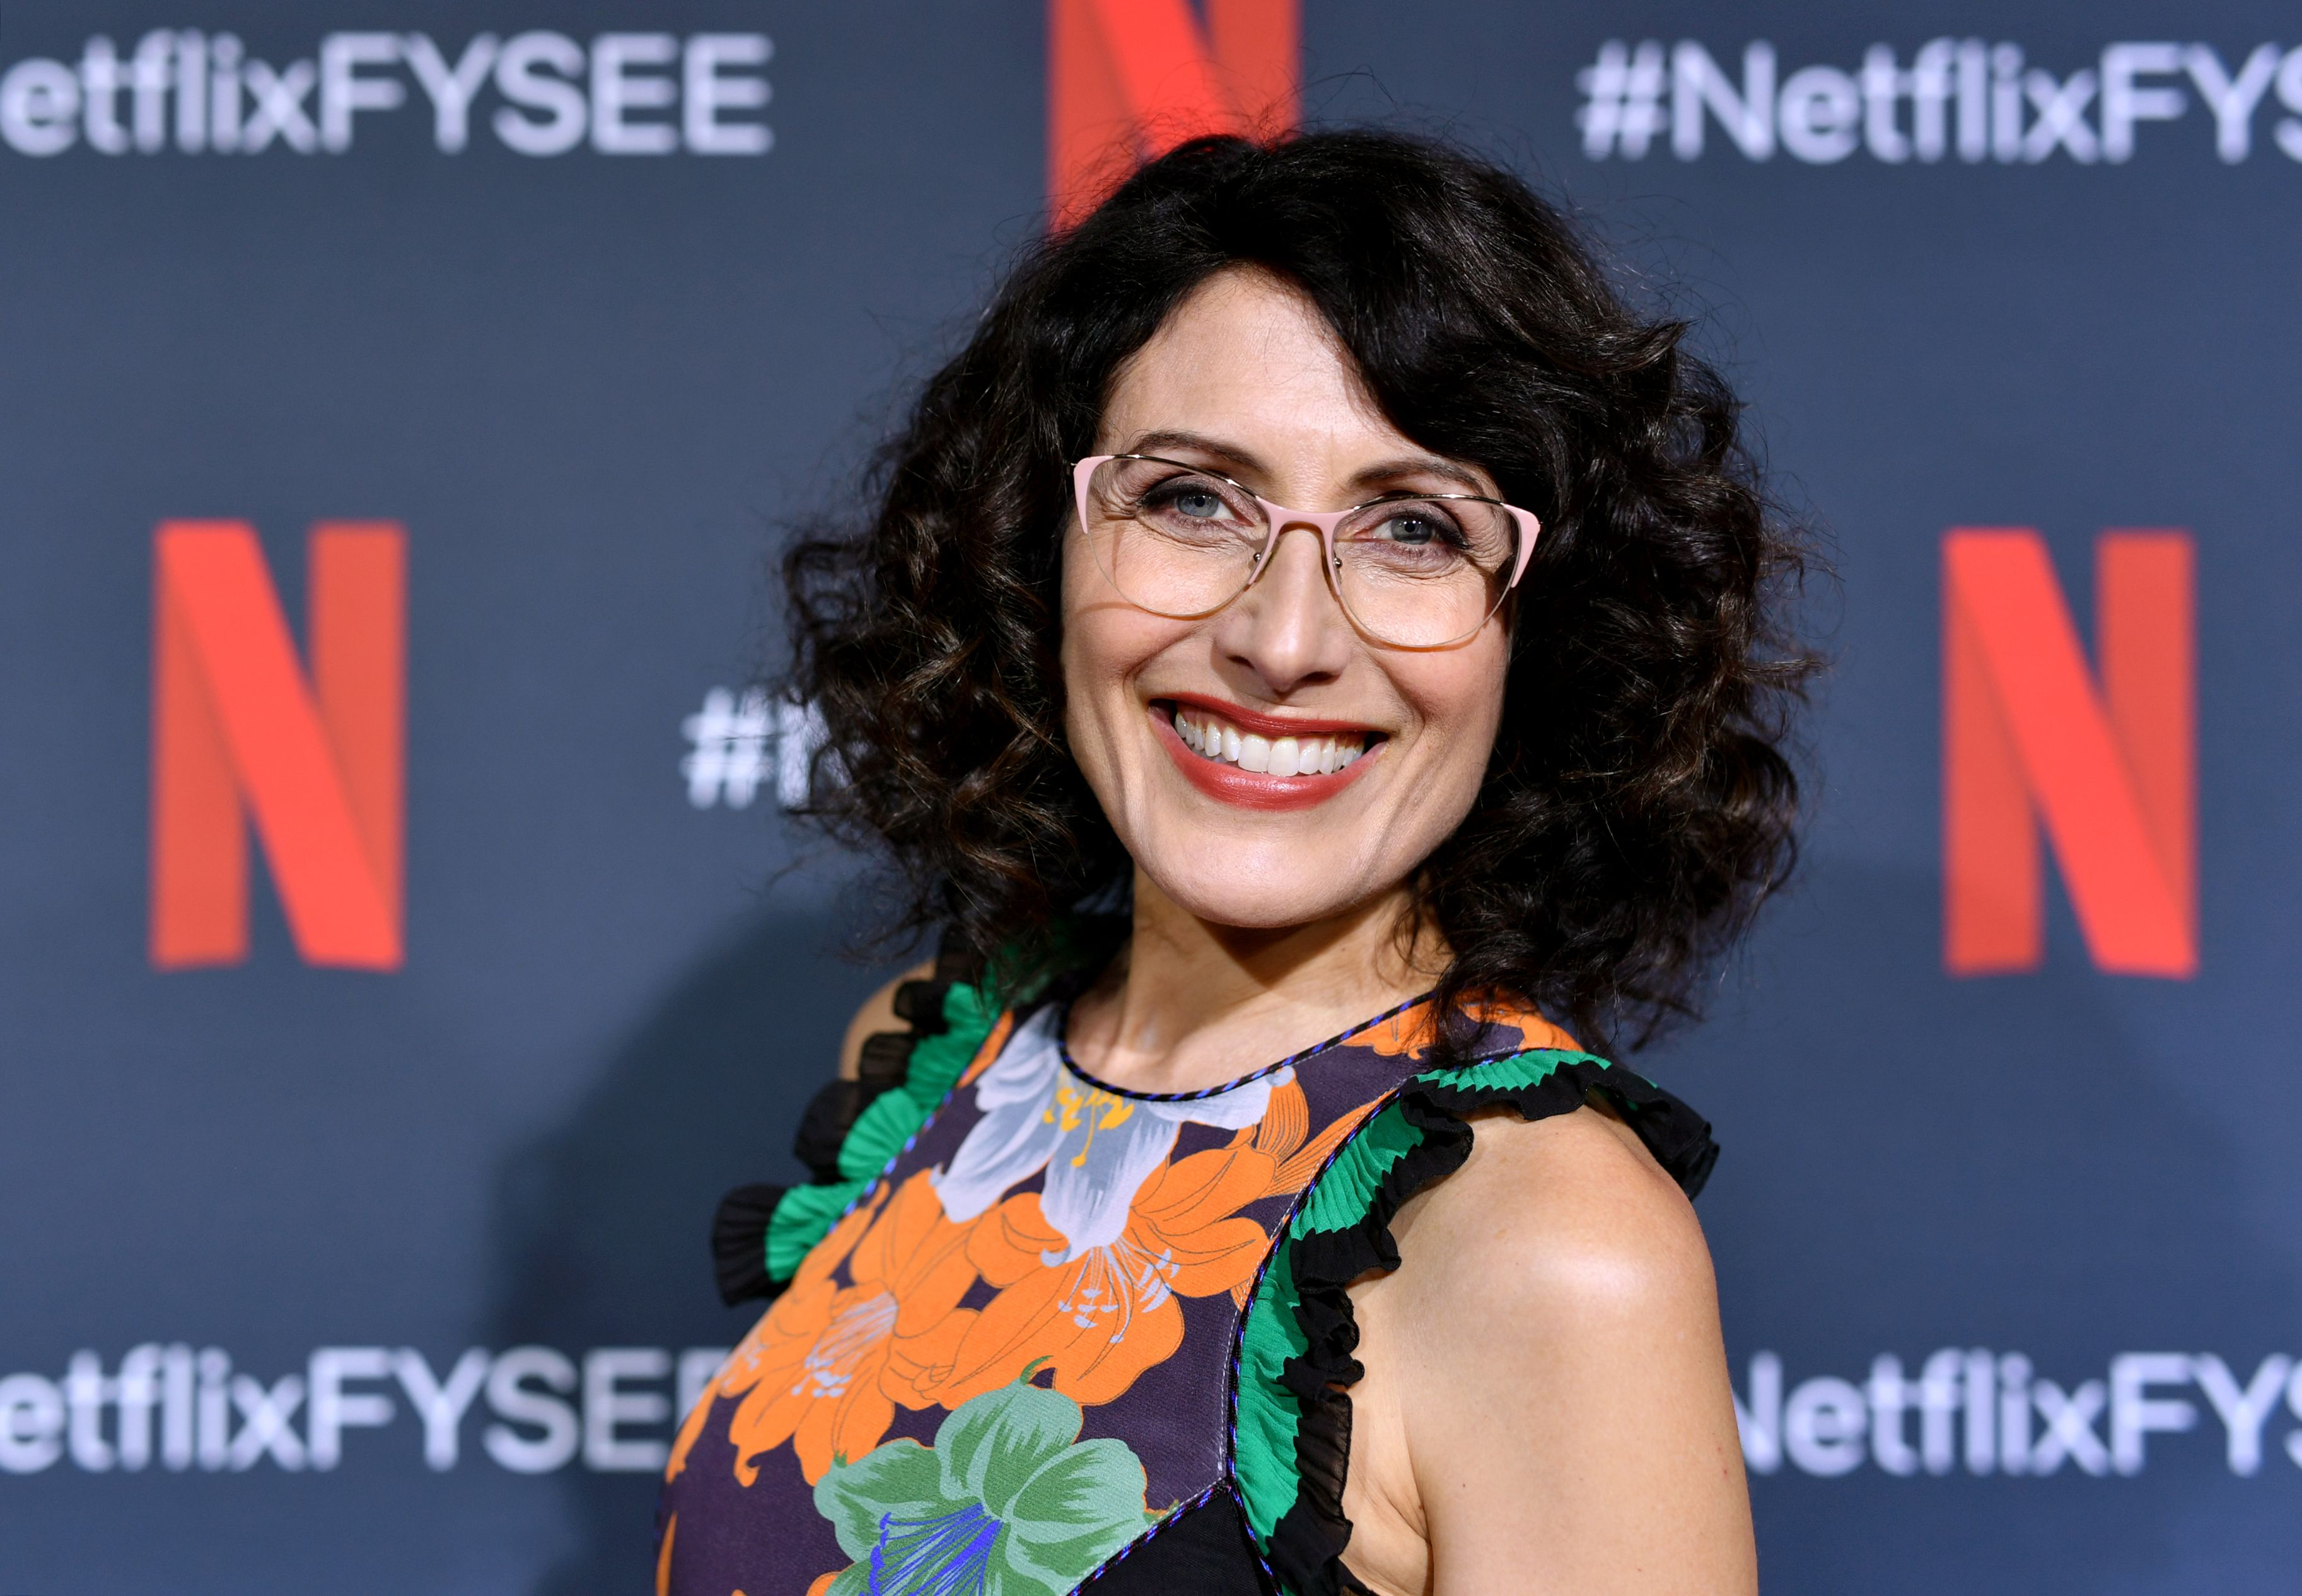 Lisa Edelstein attends the Netflix FYSEE Scene Stealer Panel at Raleigh Studios on May 30, 2019 in Los Angeles, California. | Source: Getty Images